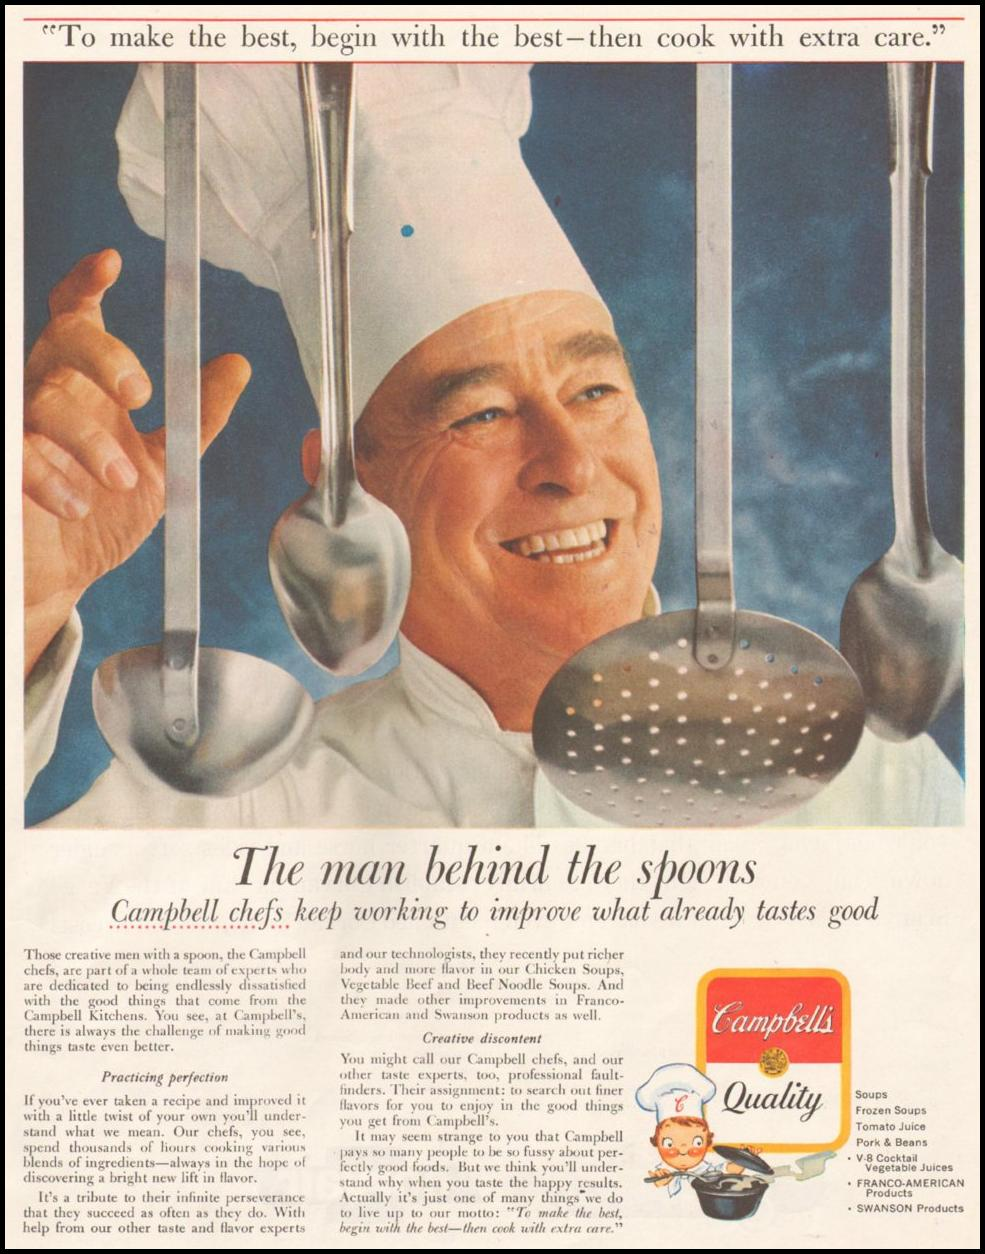 CAMPBELL'S SOUP SATURDAY EVENING POST 06/11/1960 p. 51